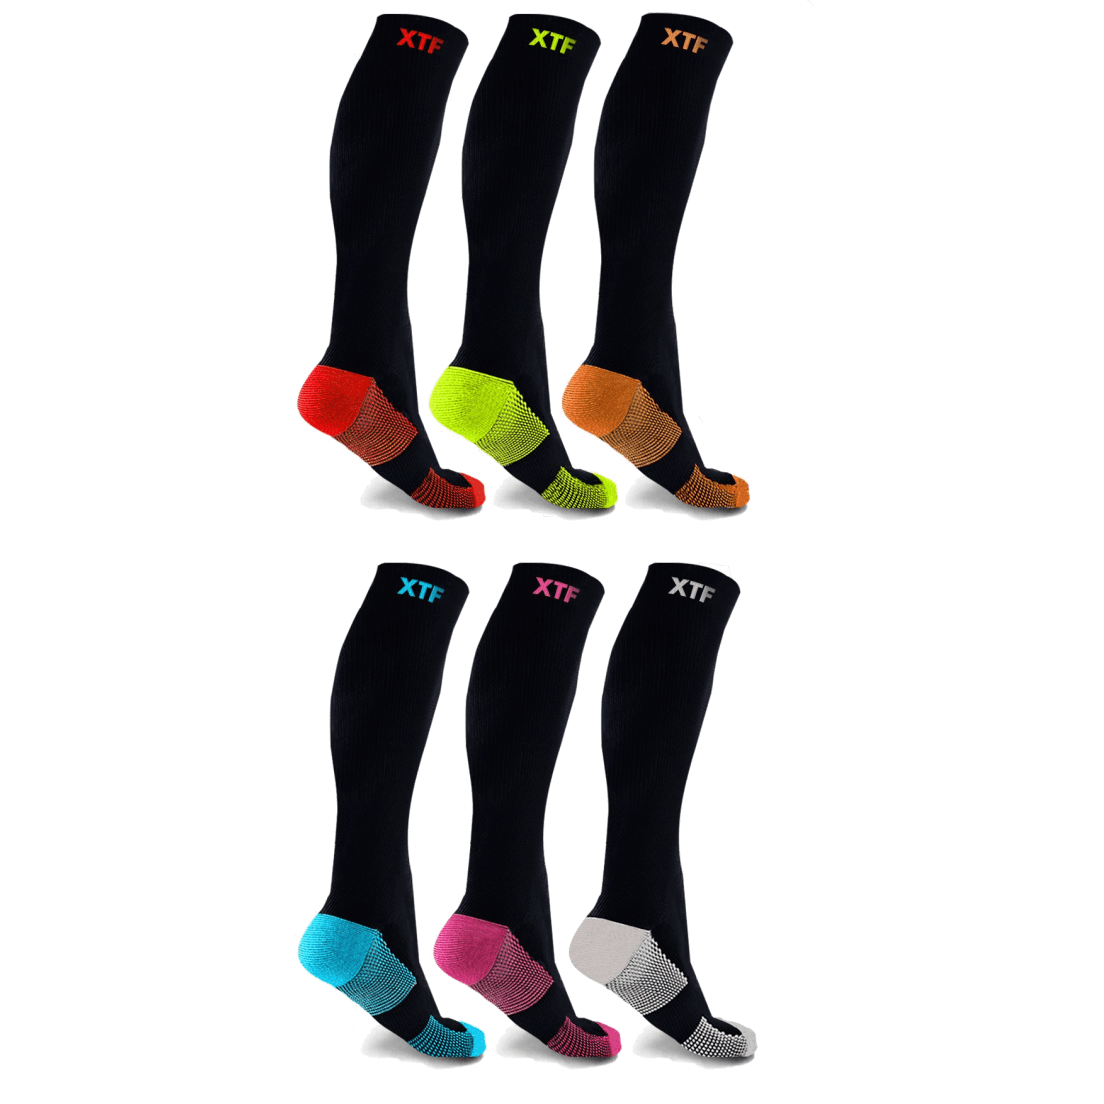 88f4e991bb 6-Pack: XTF Copper-Infused Compression Socks